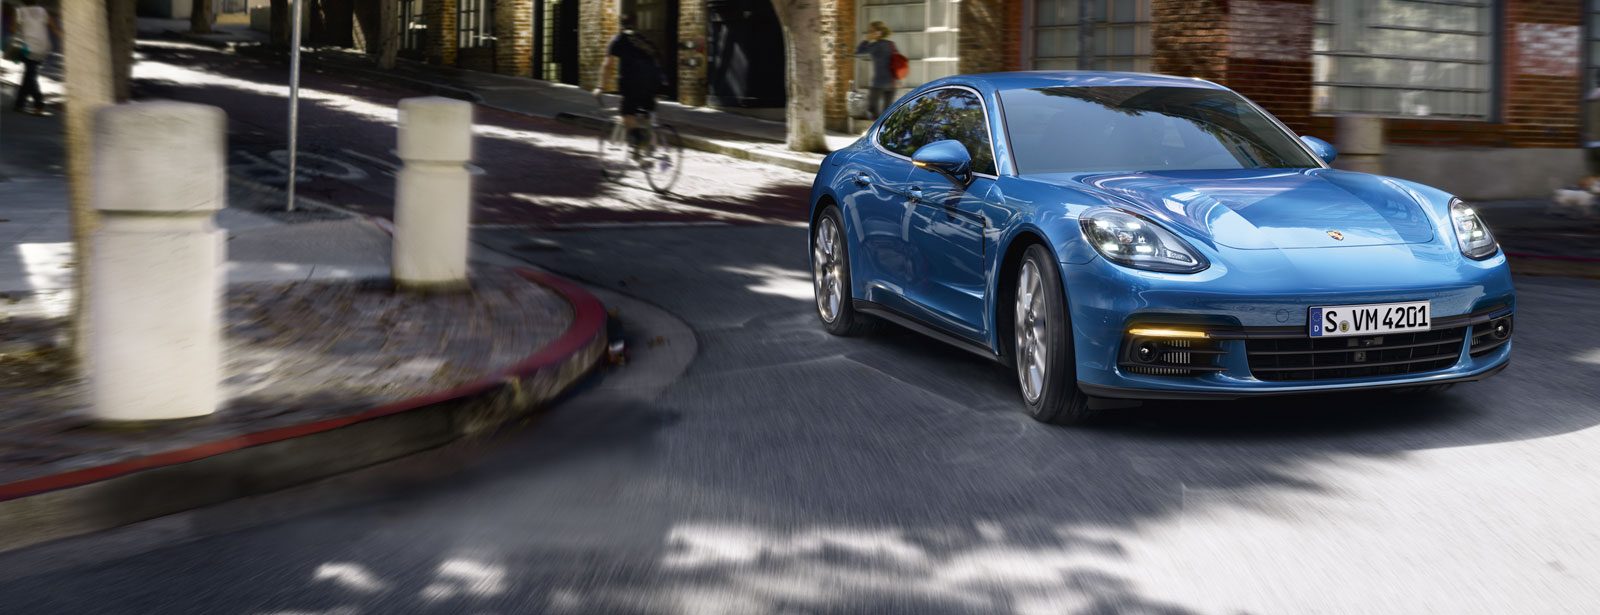 Porsche - Panamera 4S - Courage changes everything.